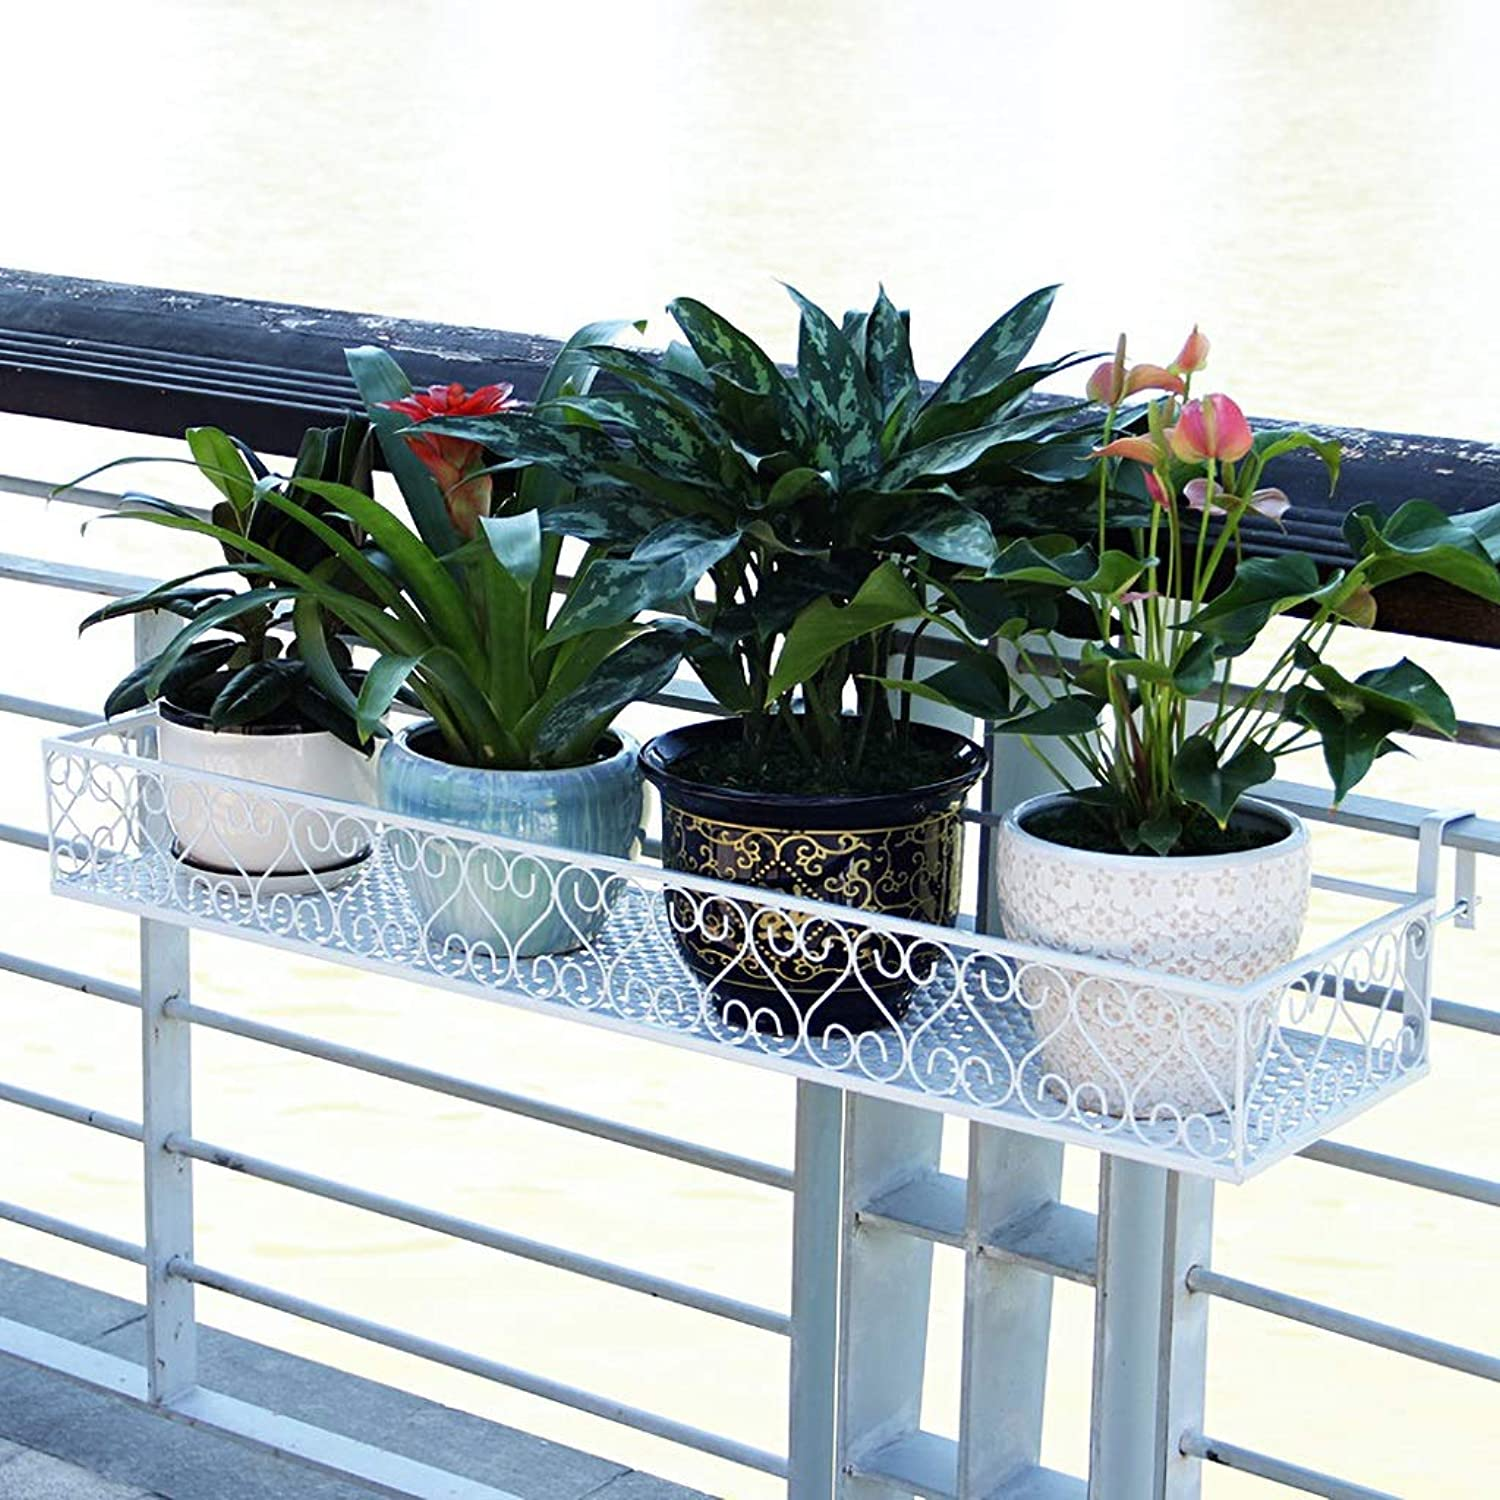 Standing Flower Stand Plant Stand Iron Armrest Flower Stand Balcony Railing Hanging Plant Flower Stand Wall Pot Rack Hanger Decorative Frame (color   White, Size   100CM)